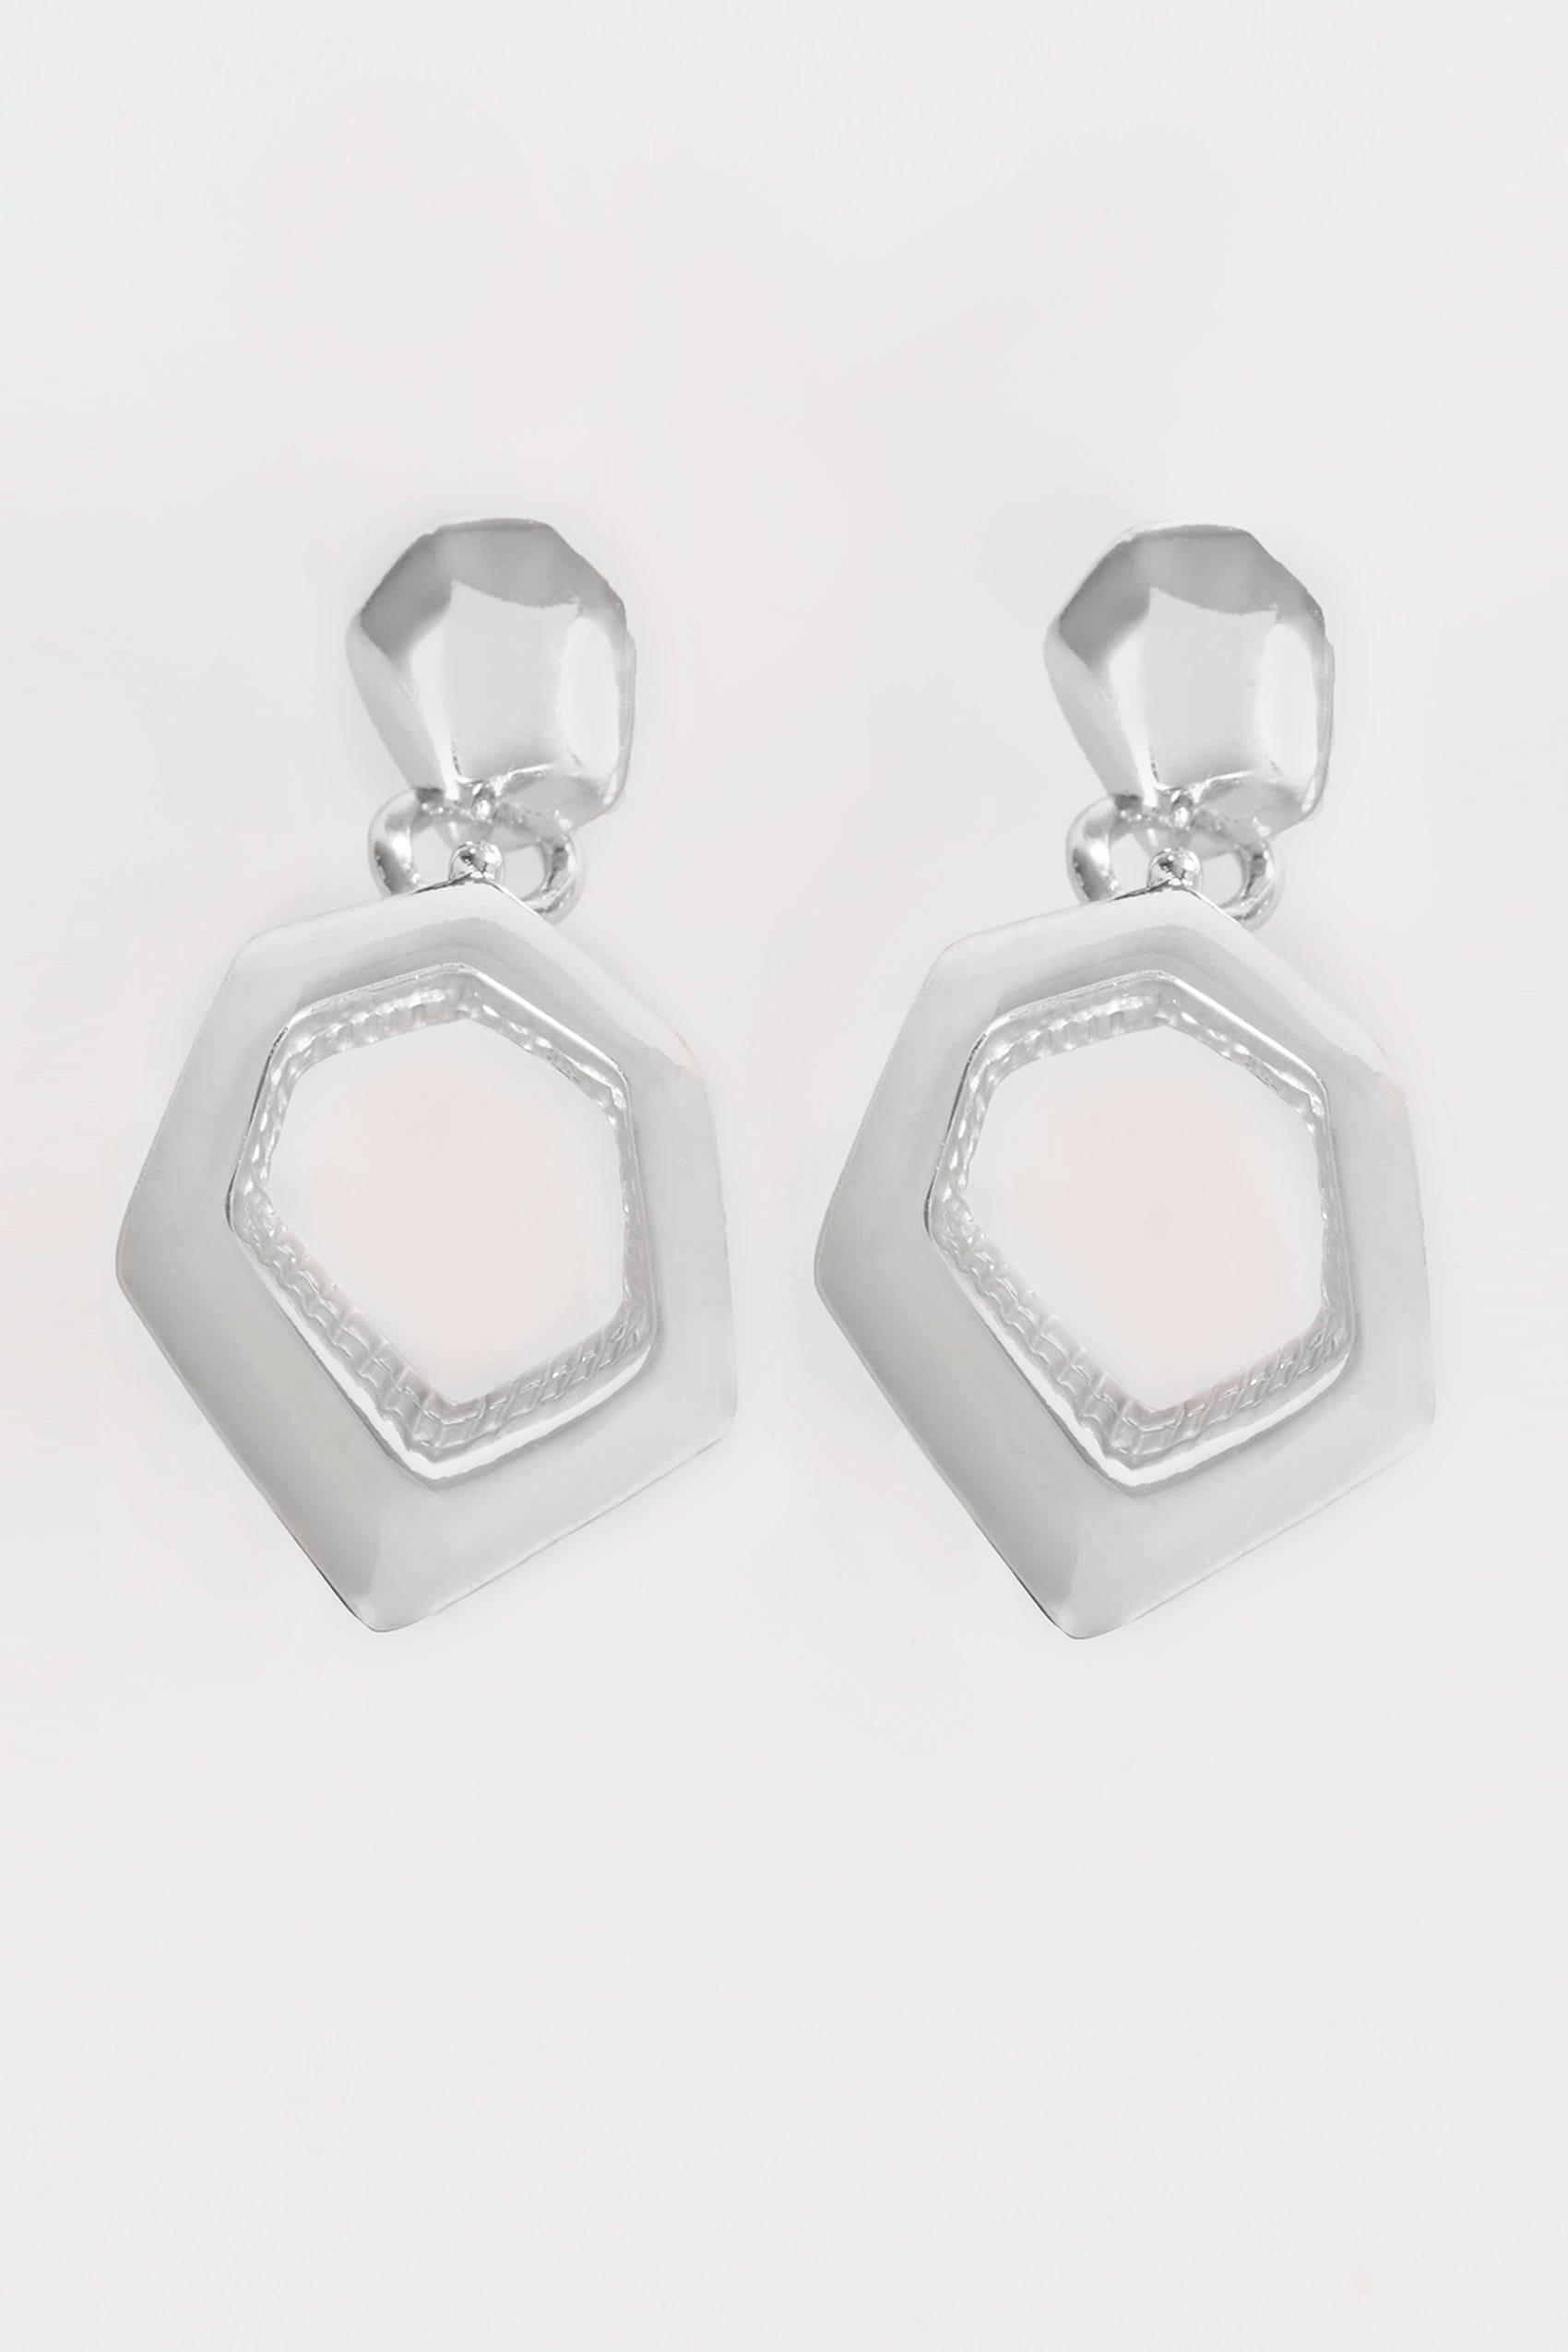 diamond web earrings mariacanale stud products hexagon yg